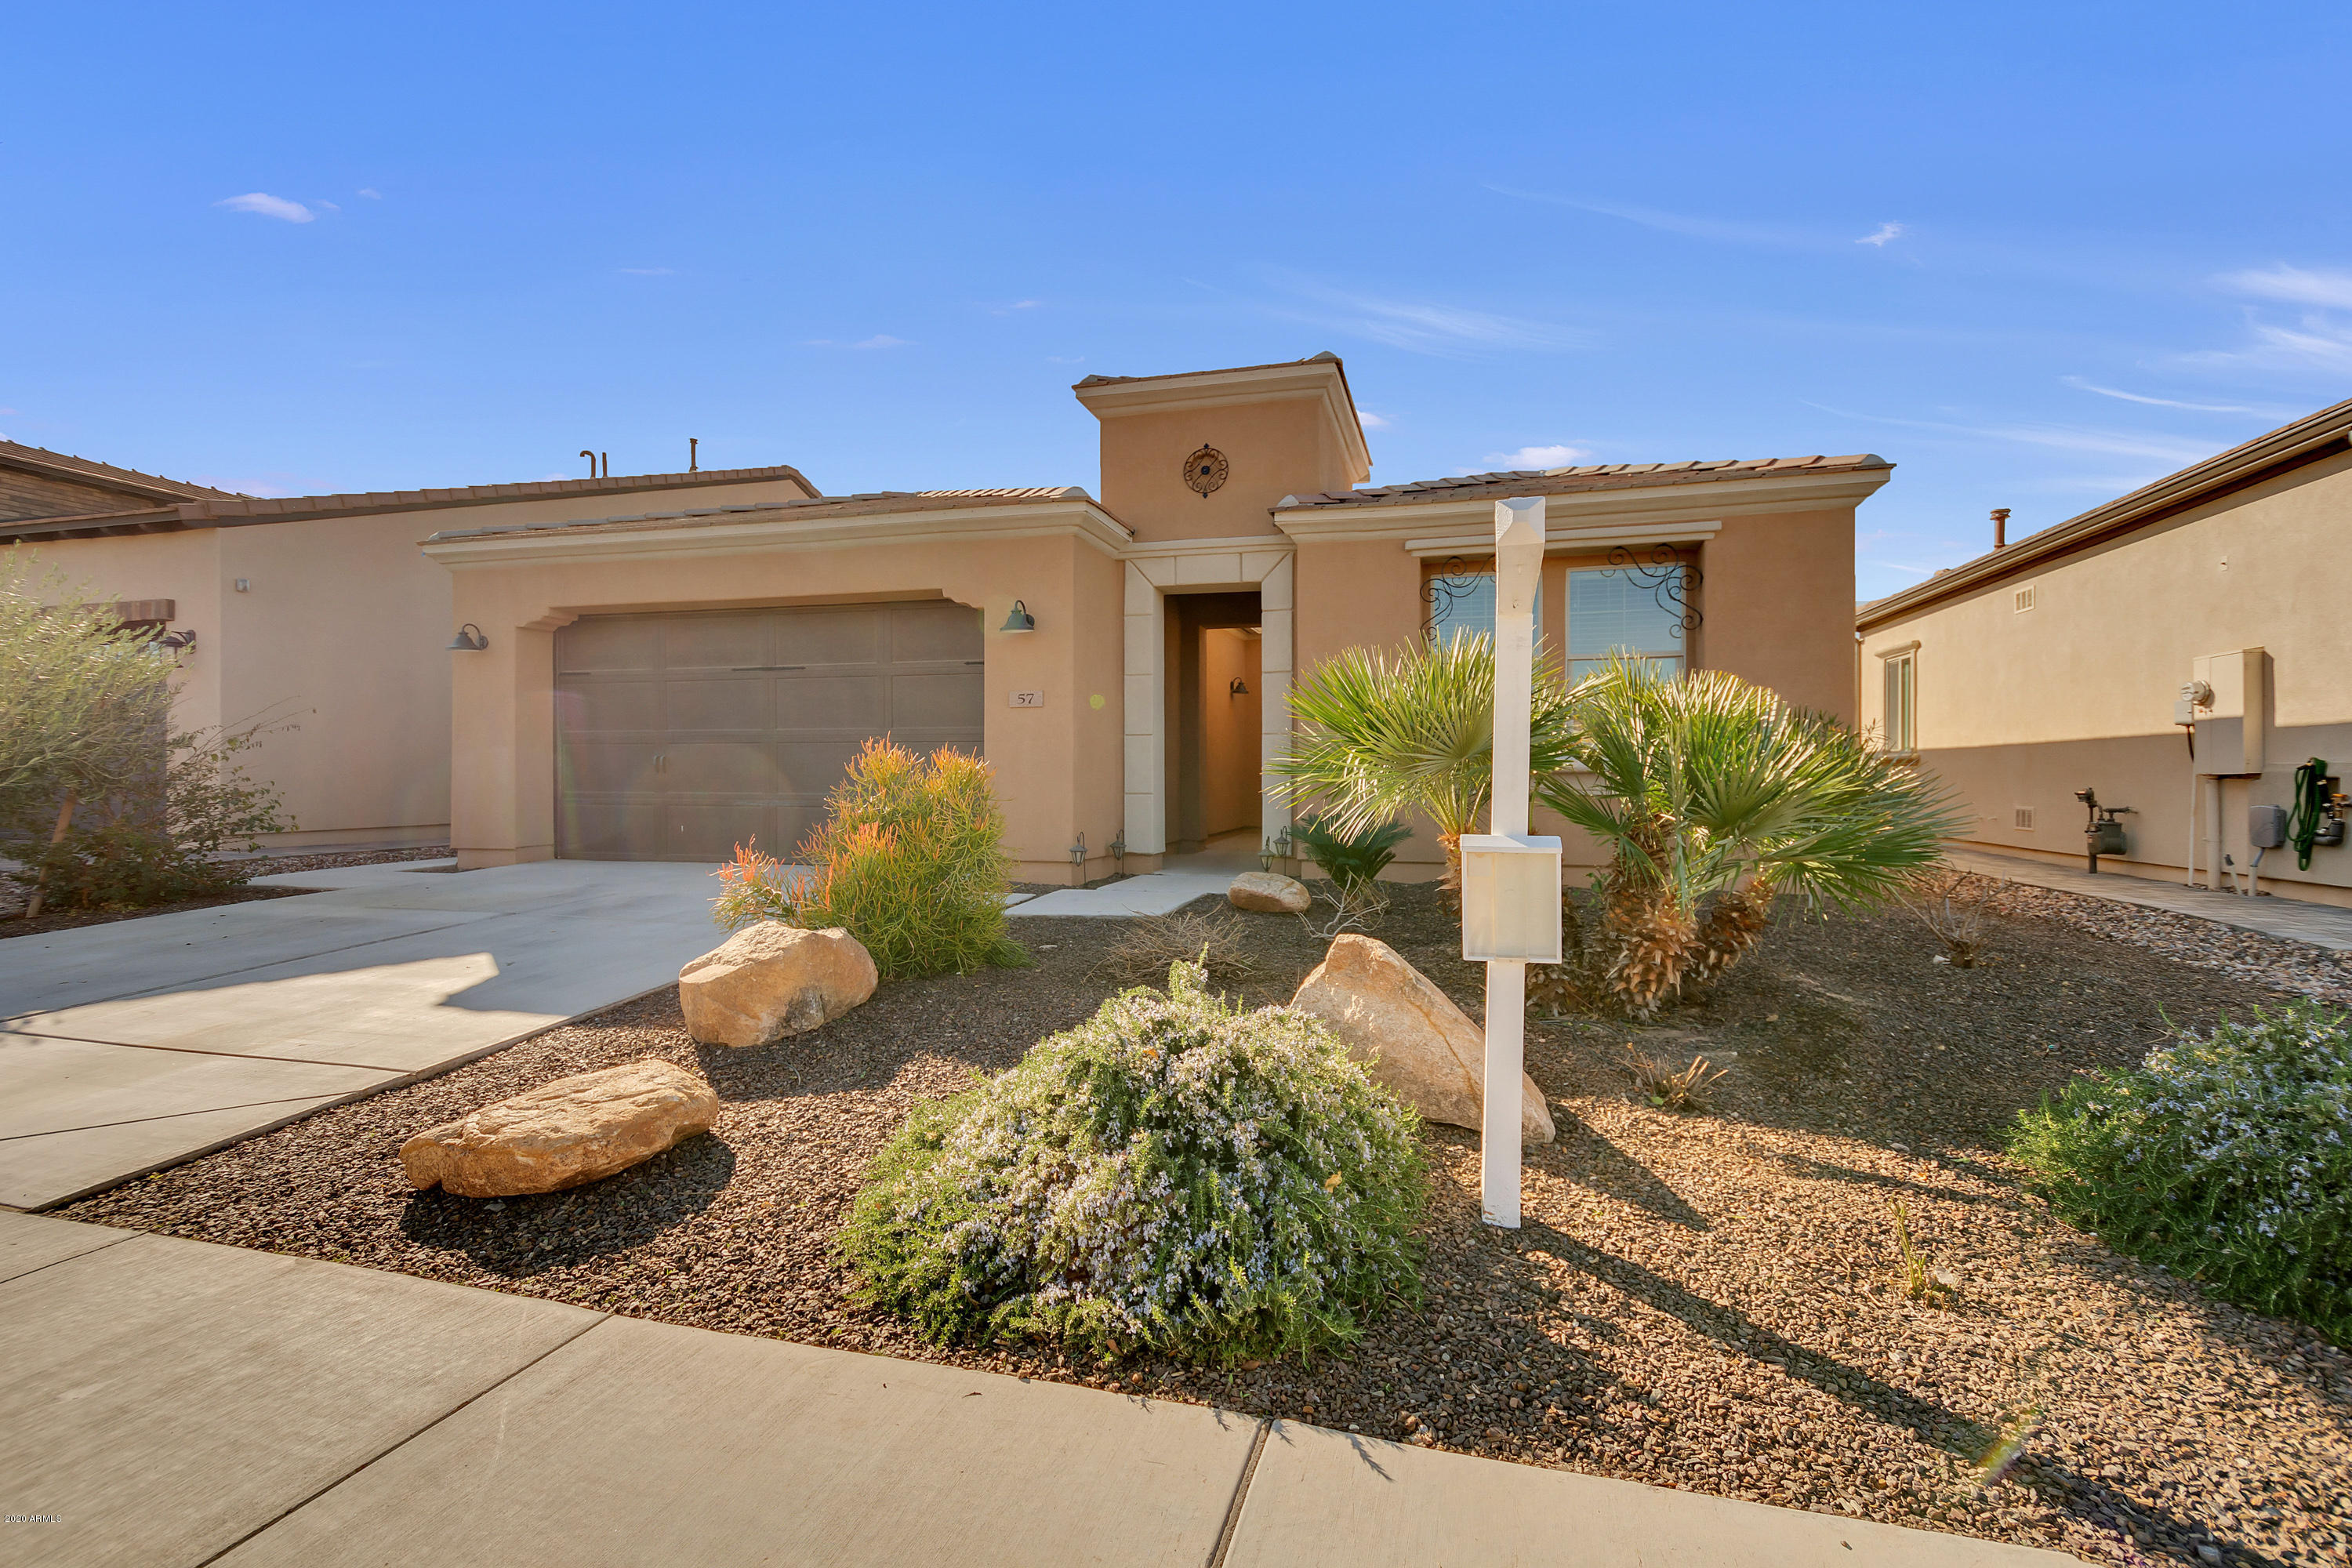 MLS 6038668 57 E CAMELLIA Way, San Tan Valley, AZ 85140 San Tan Valley AZ Encanterra